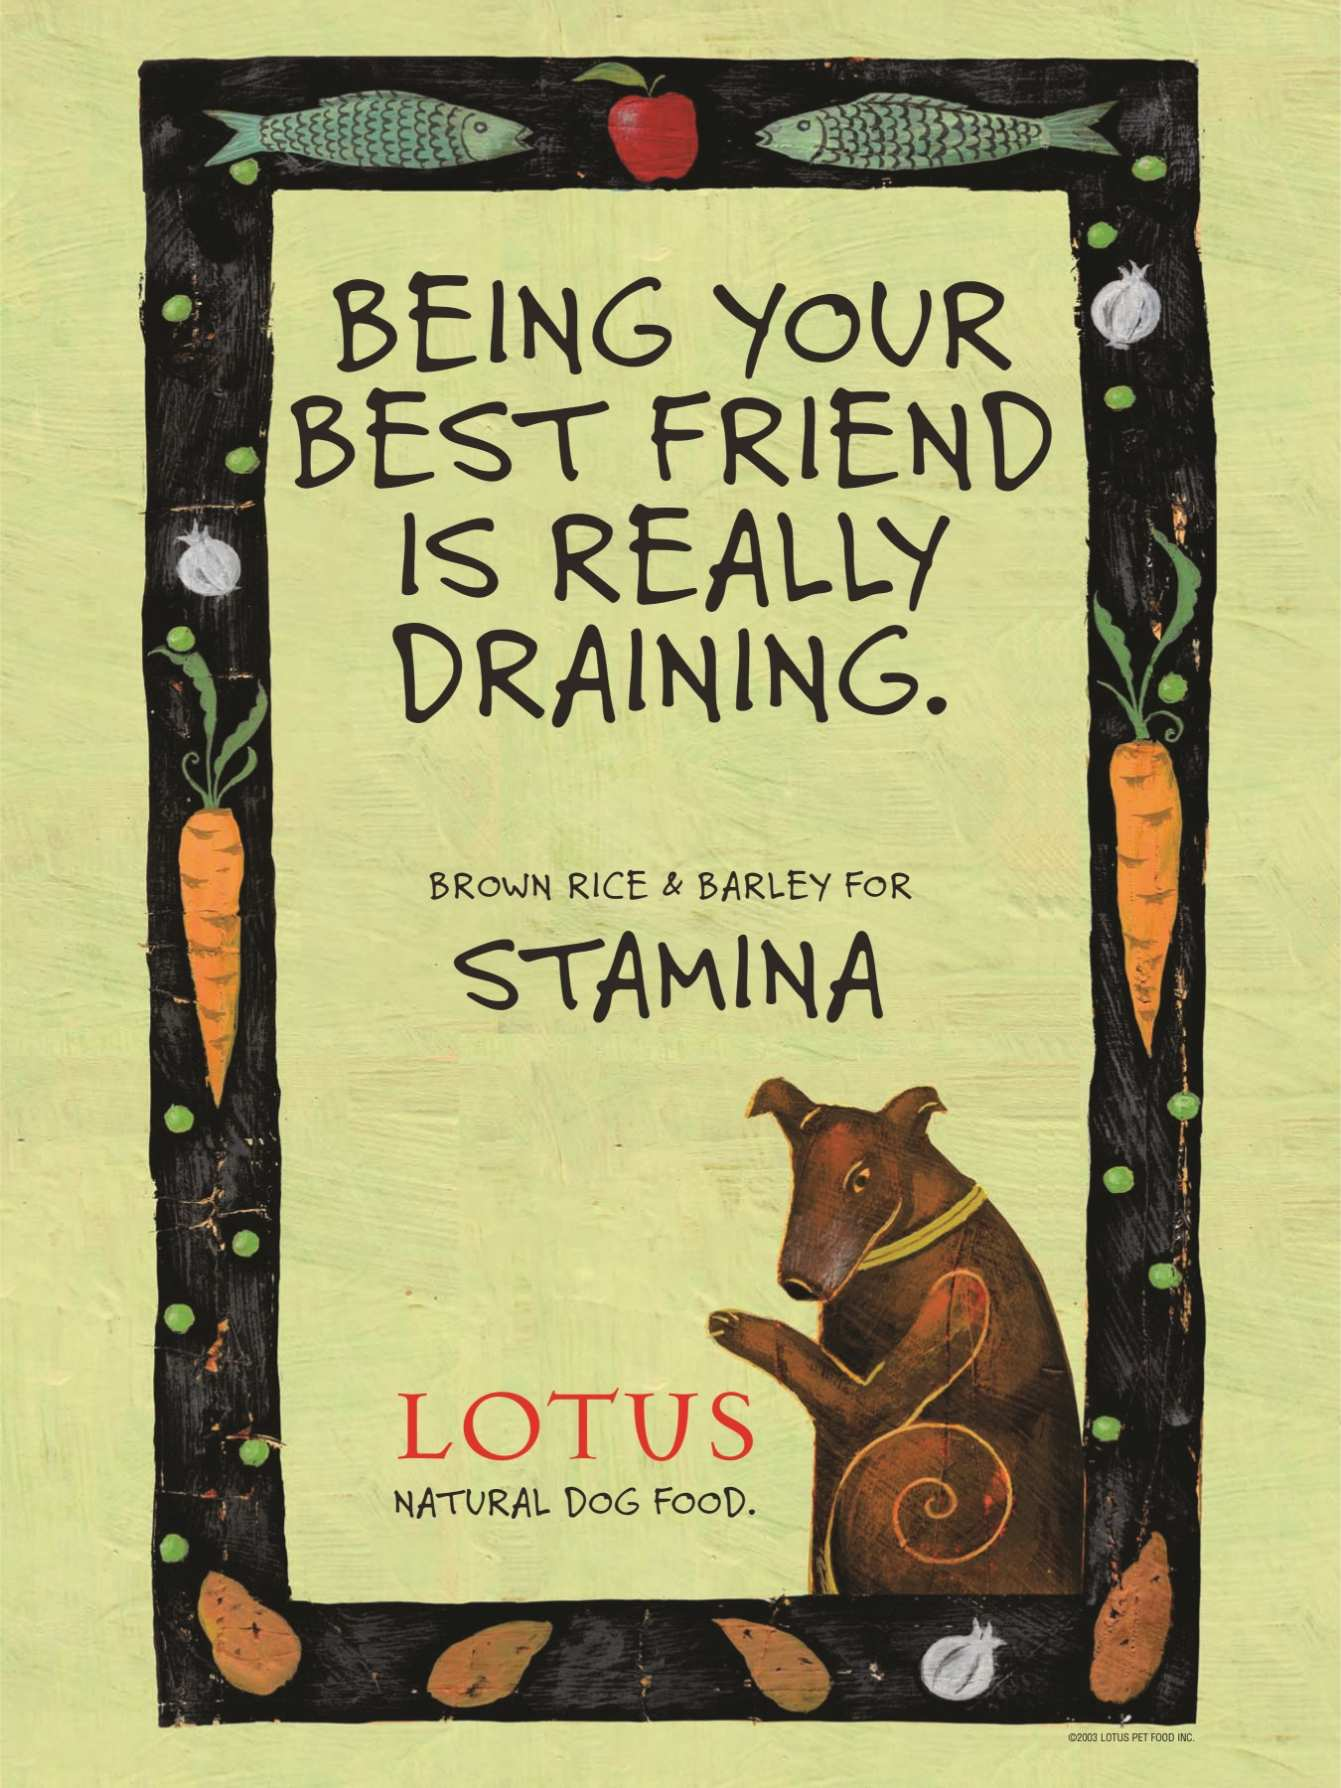 Lotus Pet Food by Centinela Feed & Pet poster featuring dog sitting.